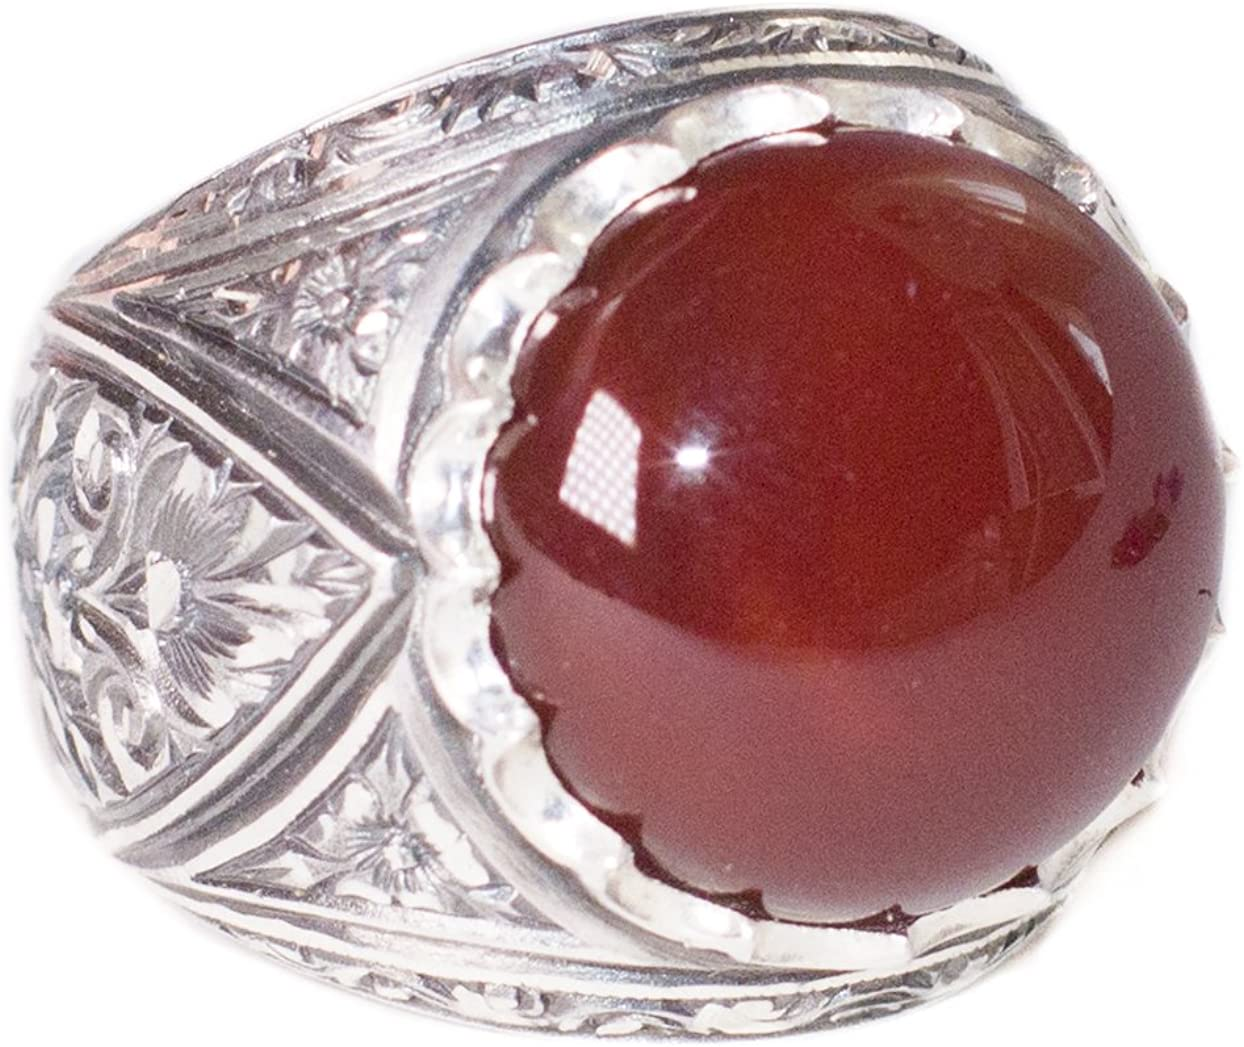 Handmade Ring Agate Stone Free Express Shipping Falcon Jewelry Mens Sterling Silver Ring Steel Pen Crafts